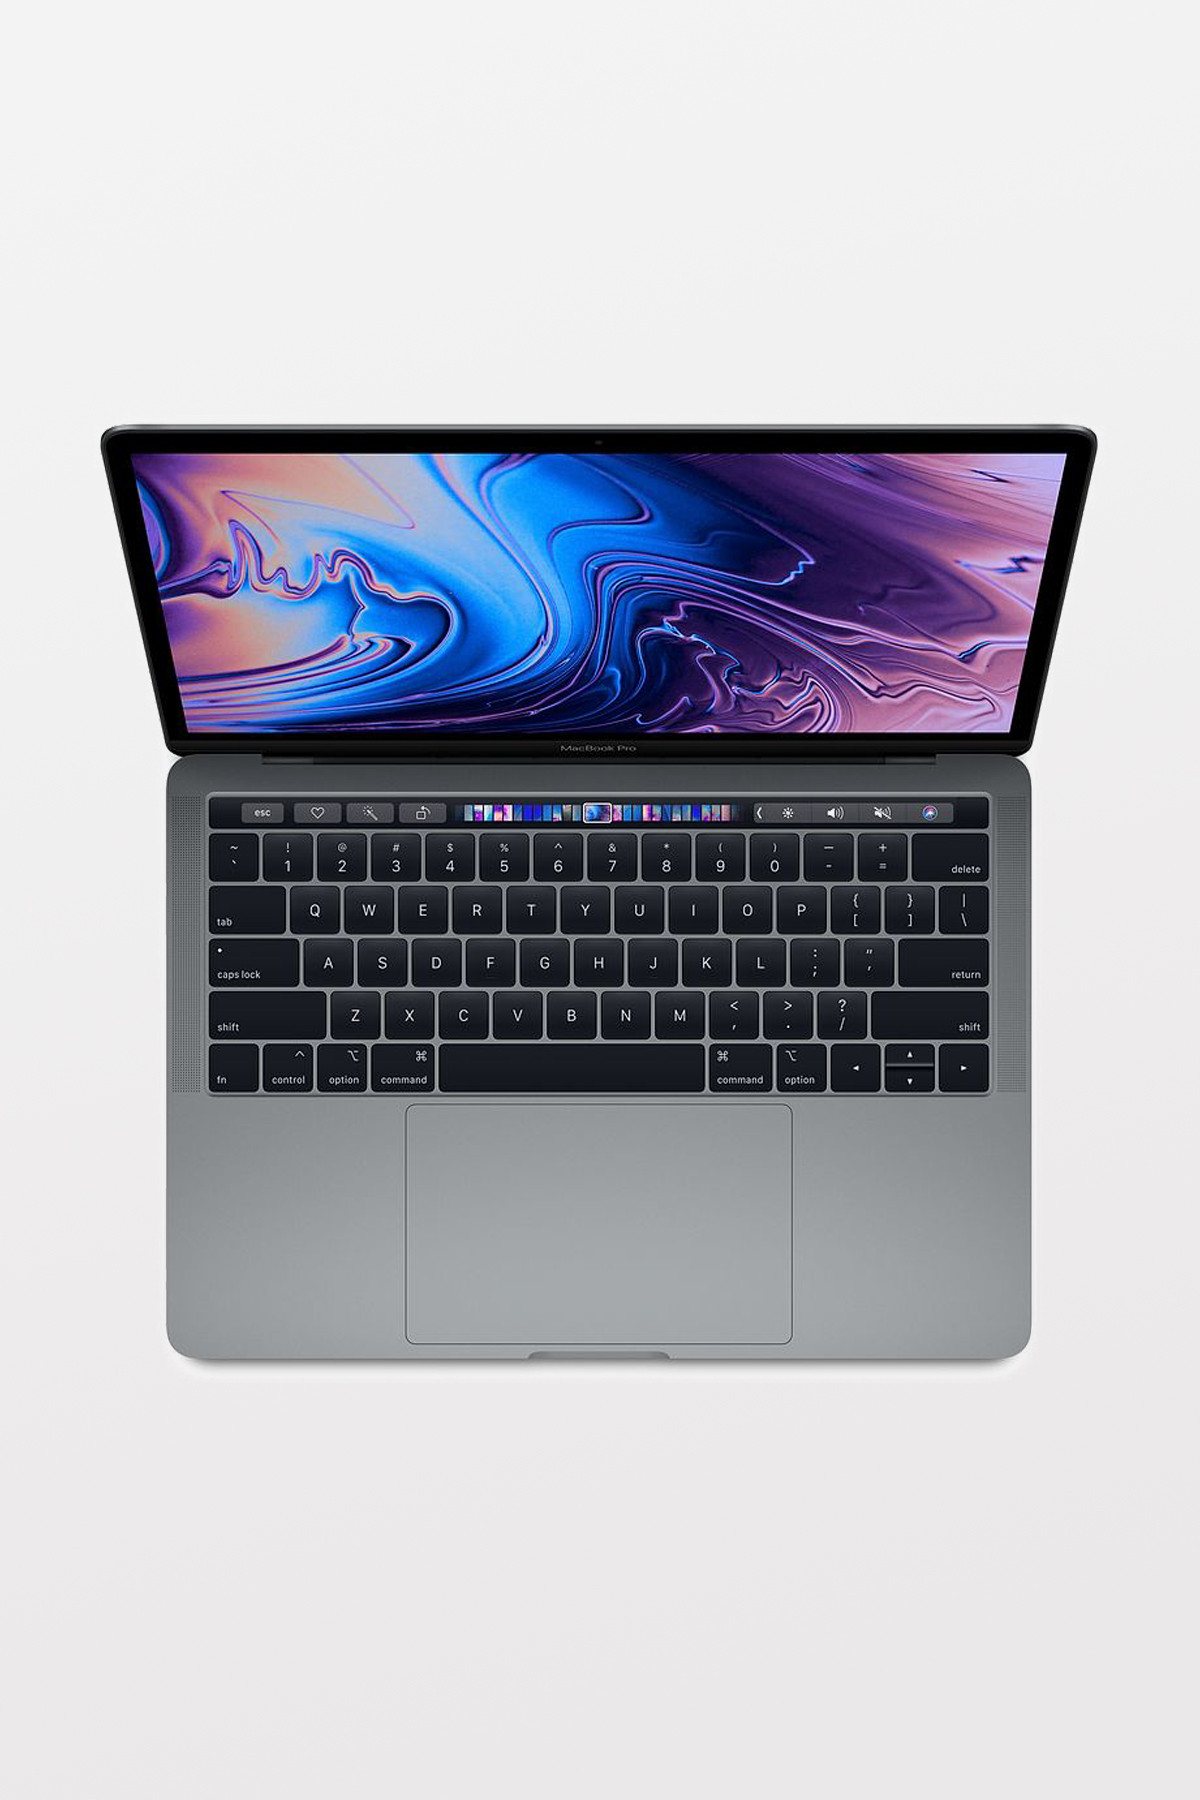 Apple MacBook Pro with Touch Bar 13-inch (2.3GHz i5/8GB/512GB Flash/Intel Iris Plus Graphics 655) - Space Grey- Refurbished